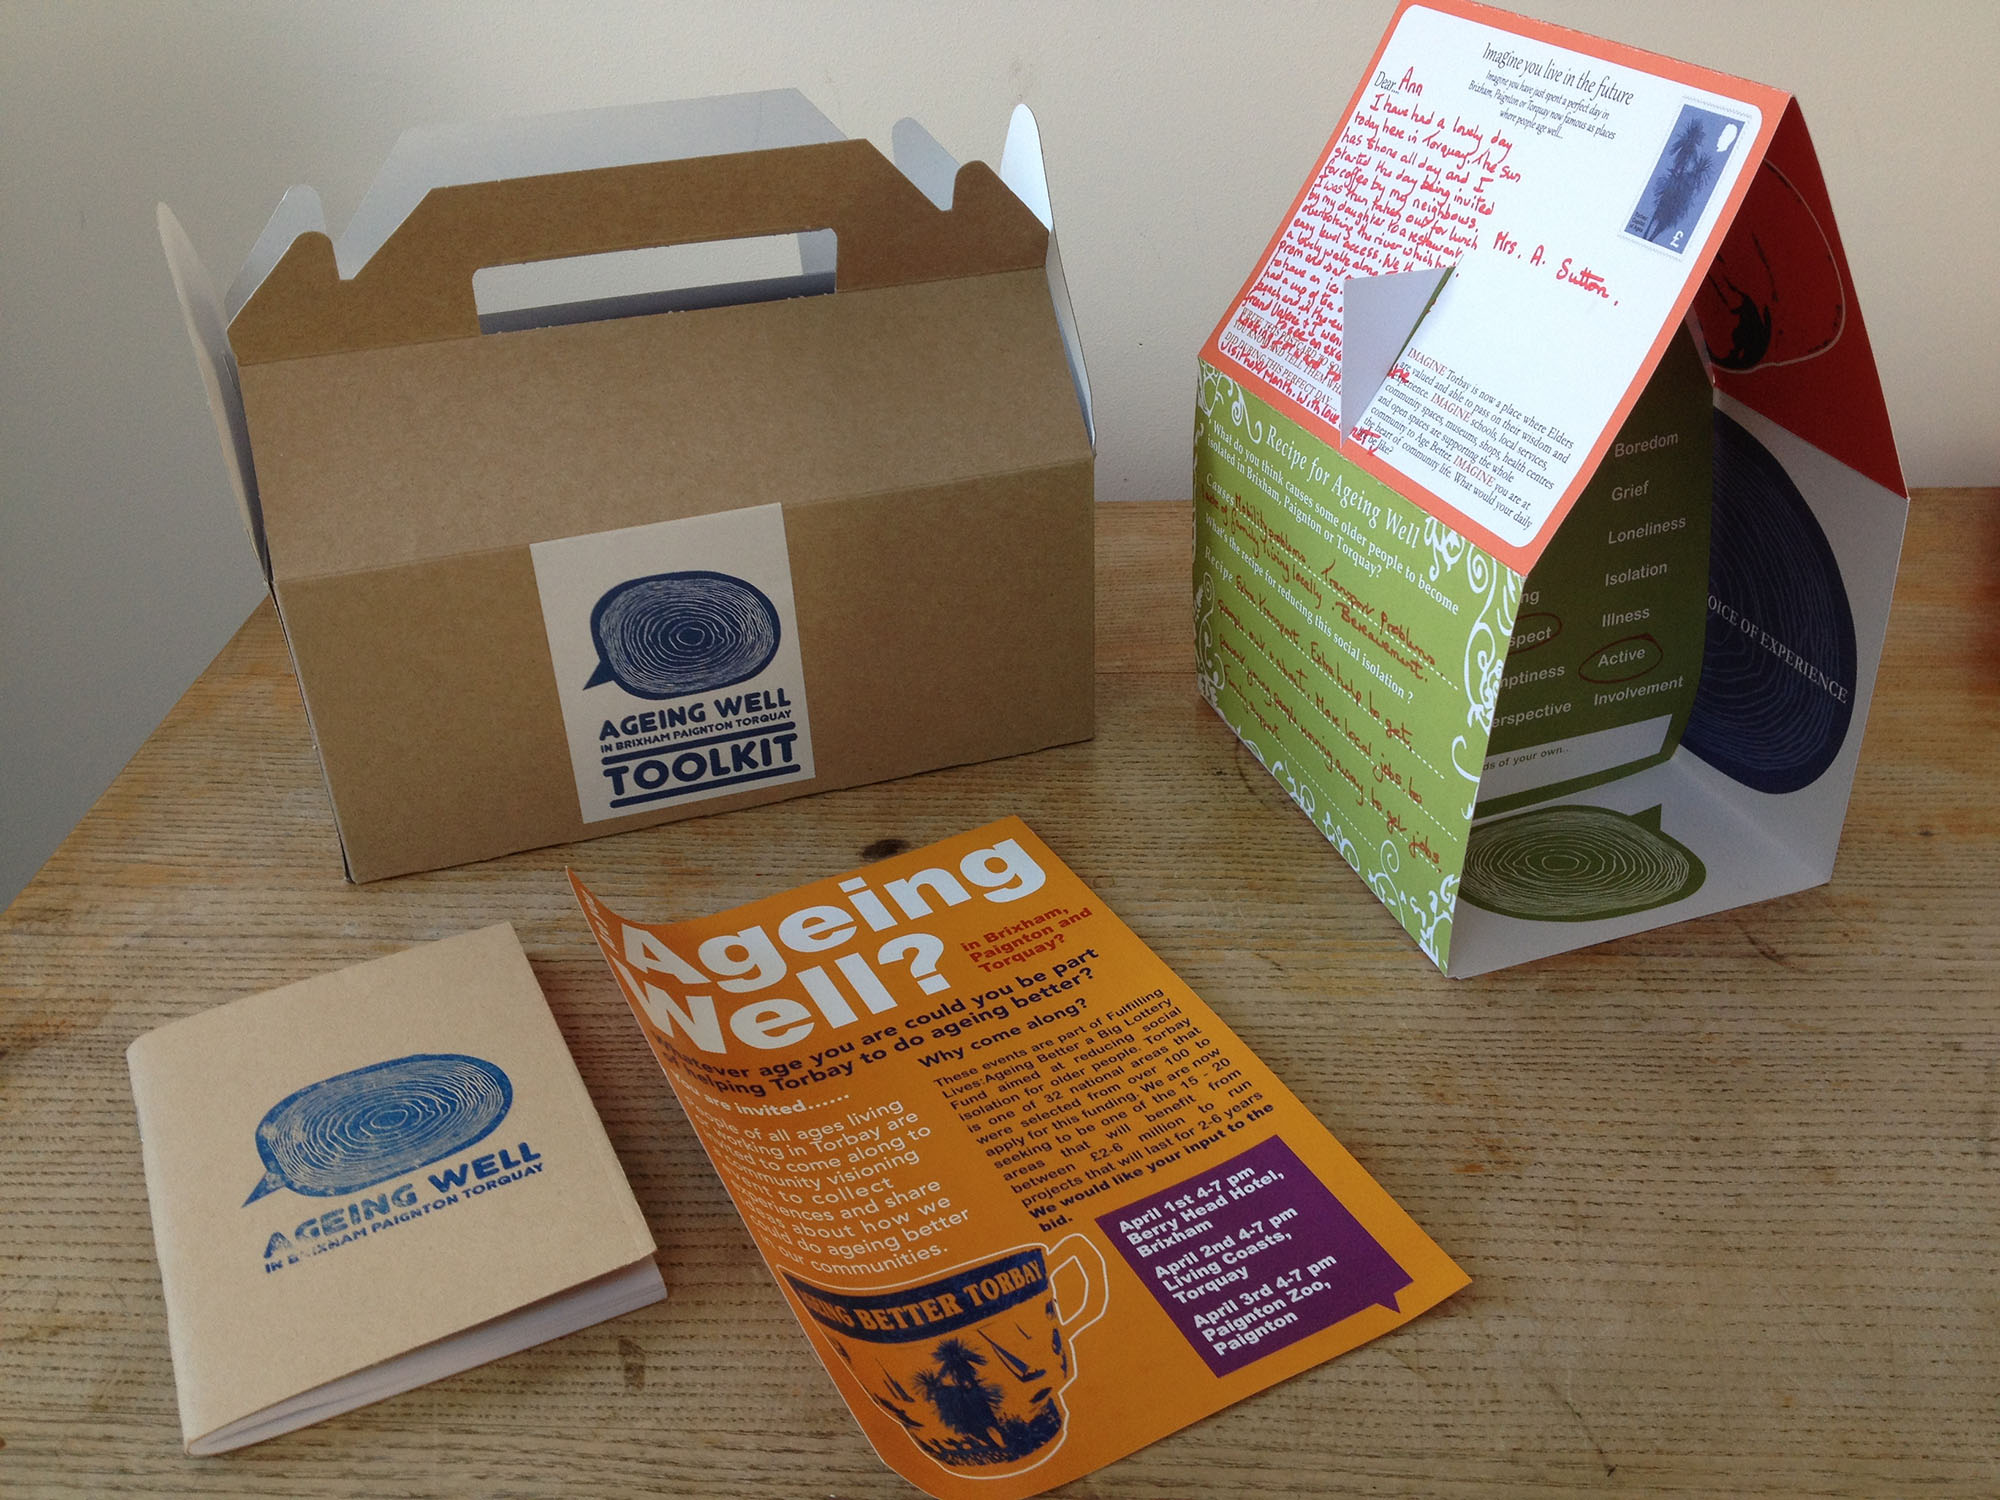 Ageing Well toolkit and box